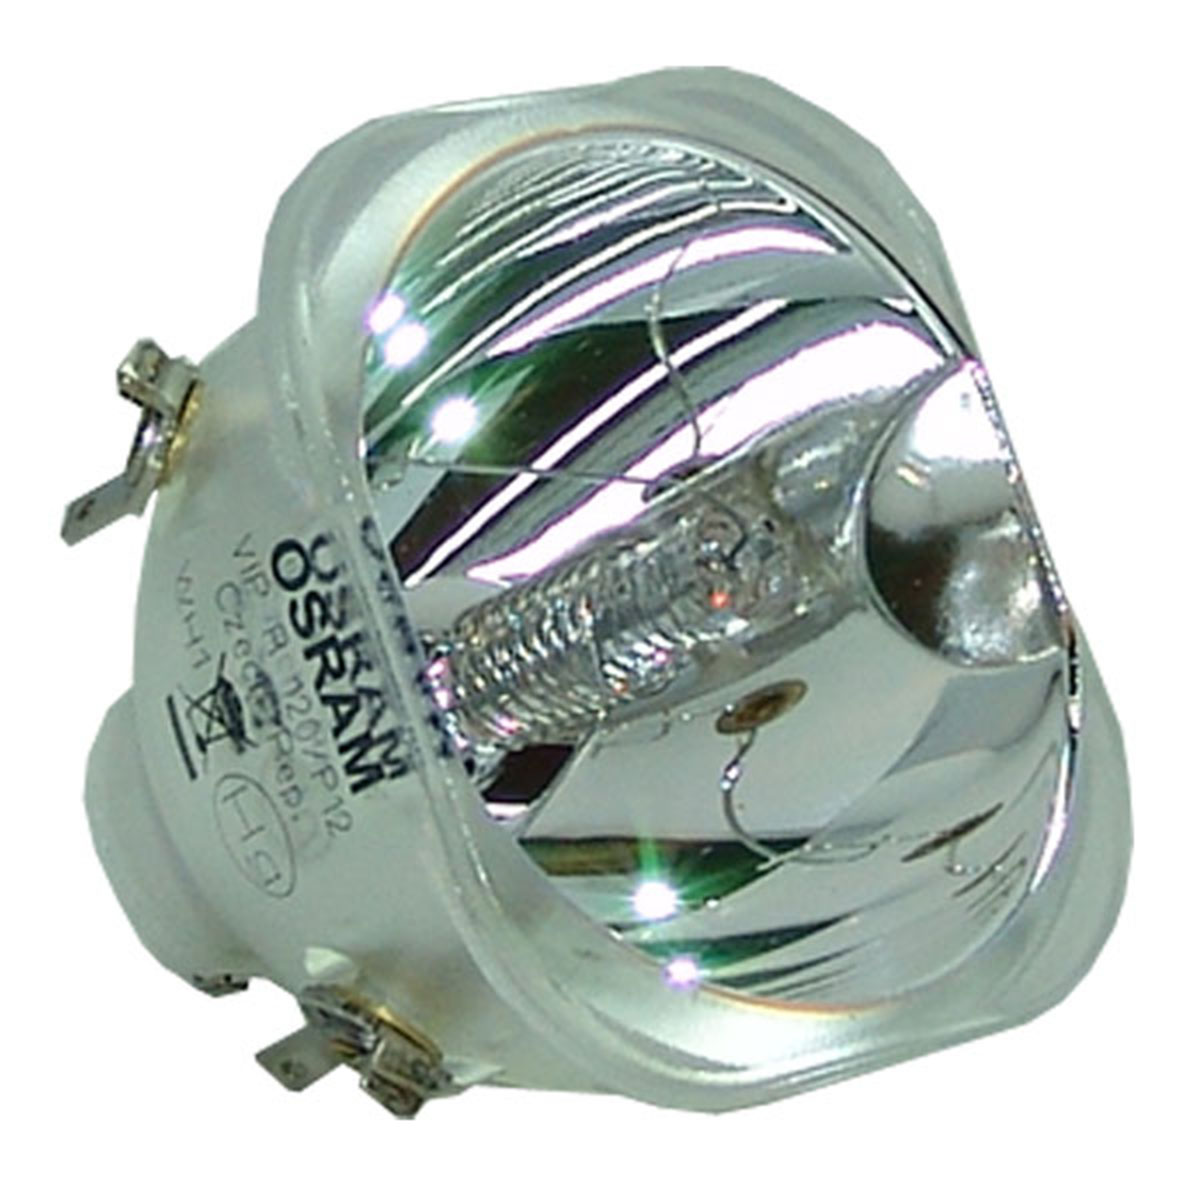 Original Osram Projector Lamp Replacement for HP L1515A (Bulb Only) - image 4 of 5